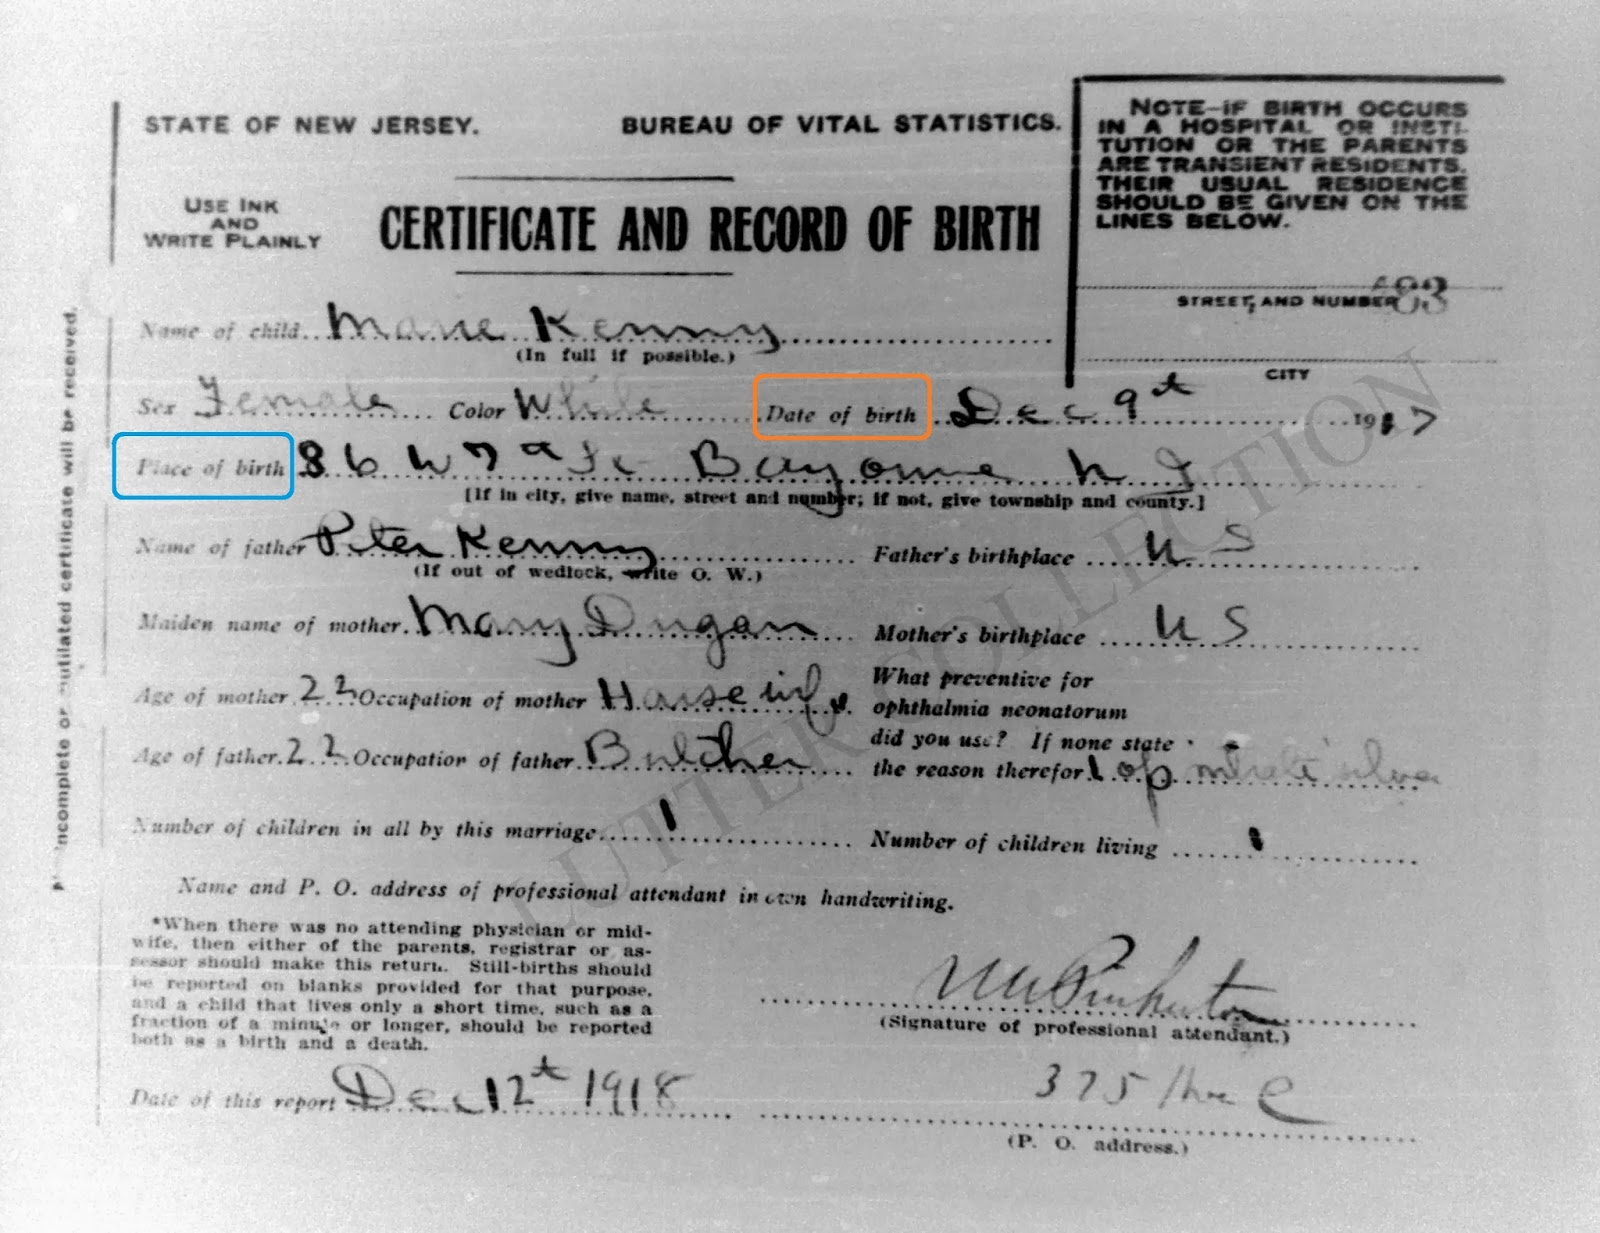 Family history research by jody birth corrections birth certificate for marie kenny born december 9 1917 at 86 w 7th st bayonne hudson county new jersey aiddatafo Choice Image